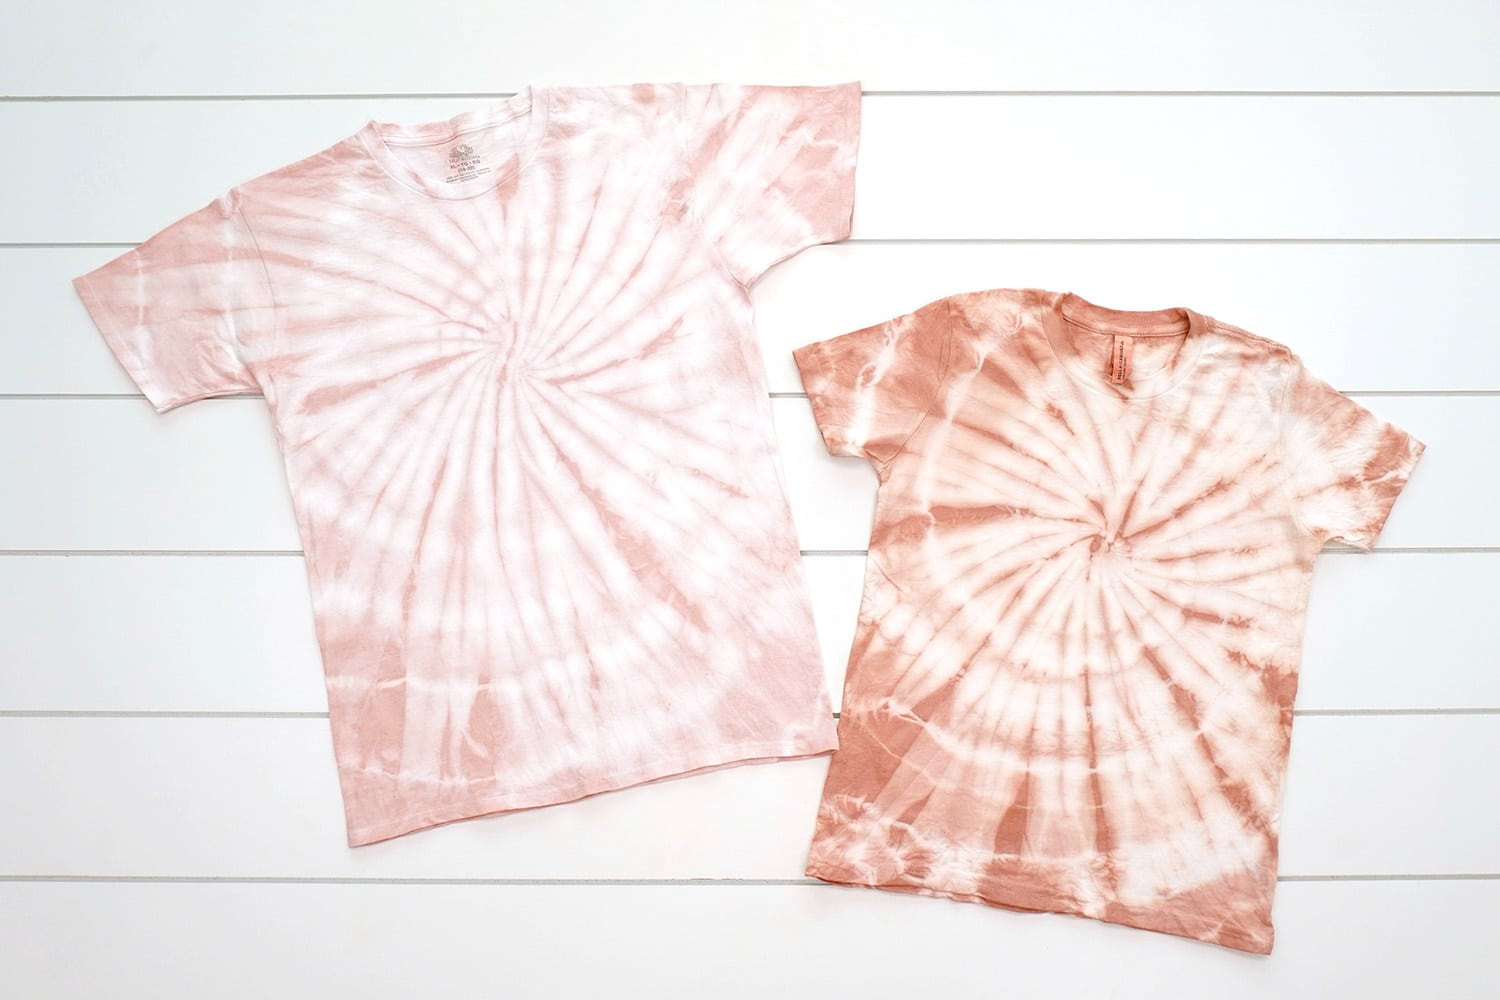 two spiral tie-dye shirts on a white background, one blush pink color and one a peachy pink